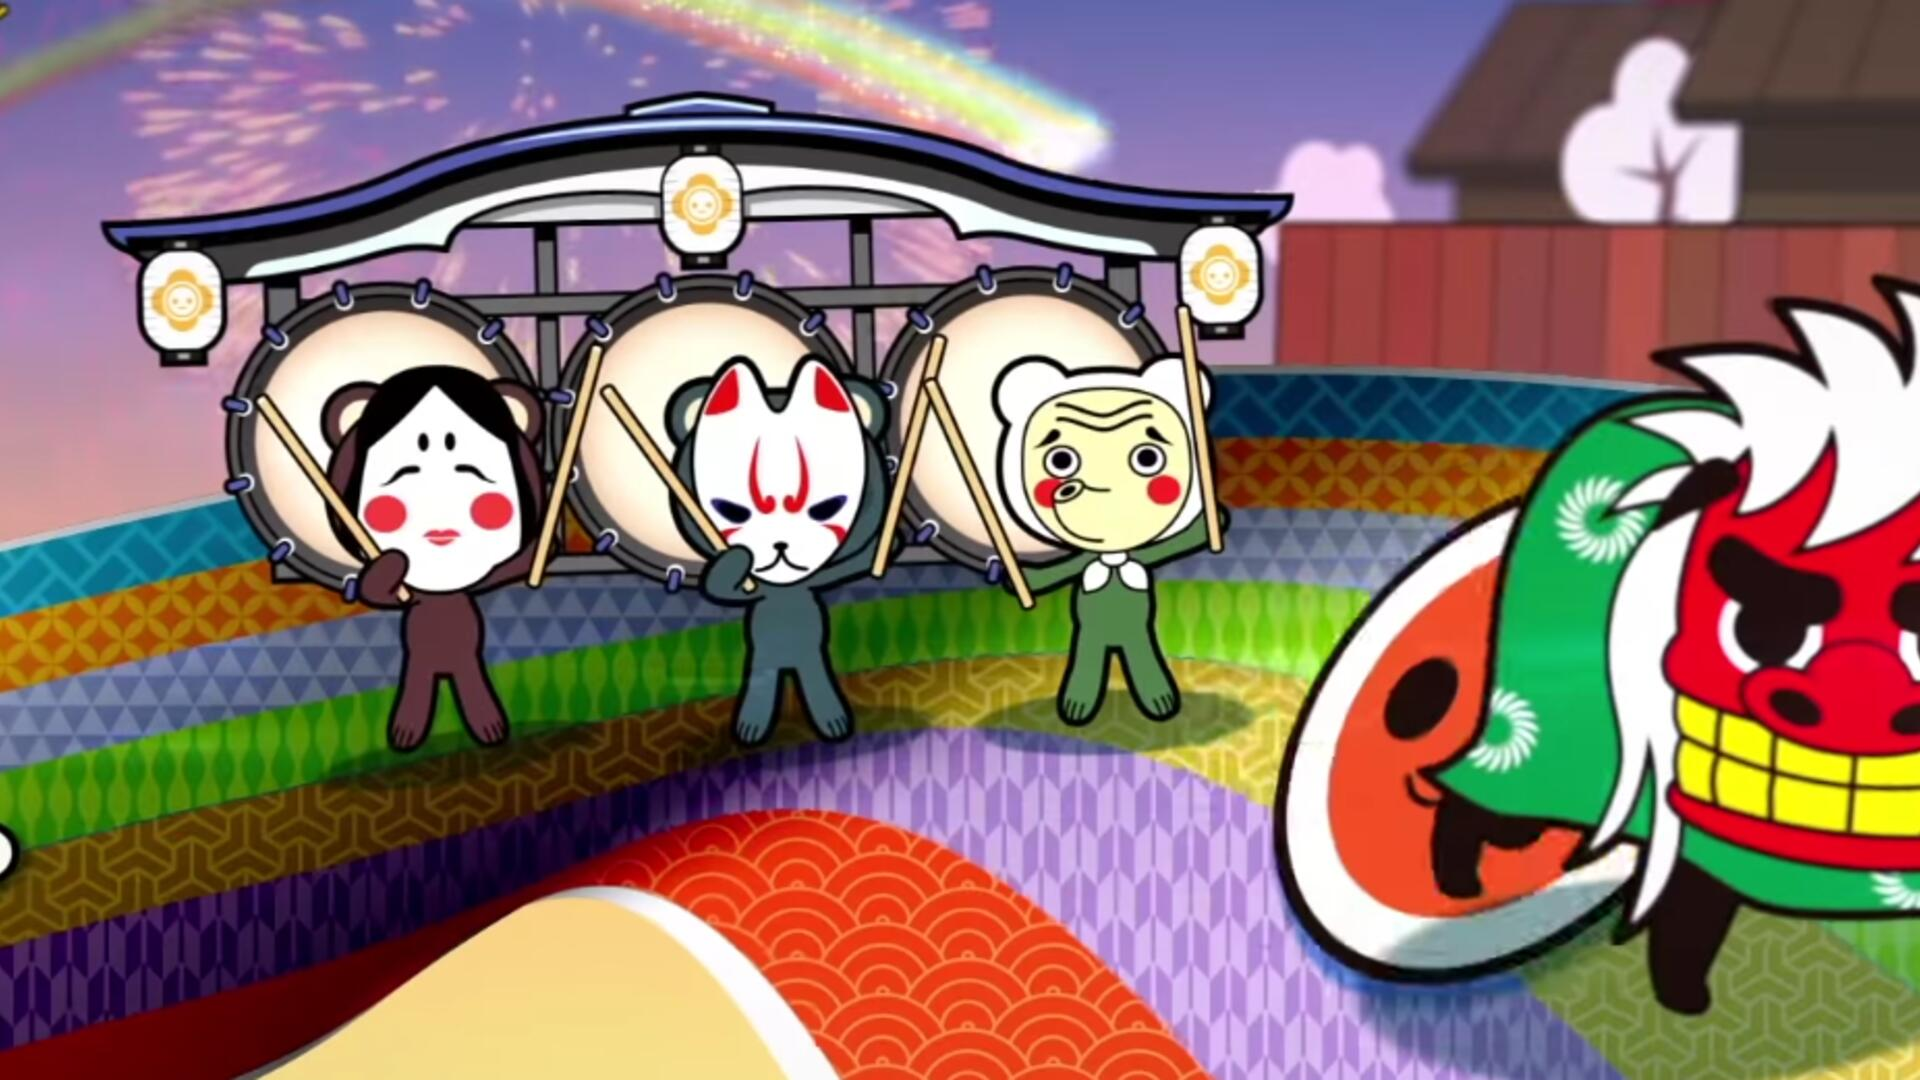 Taiko Drum Master for Switch and PS4 Confirmed for North America